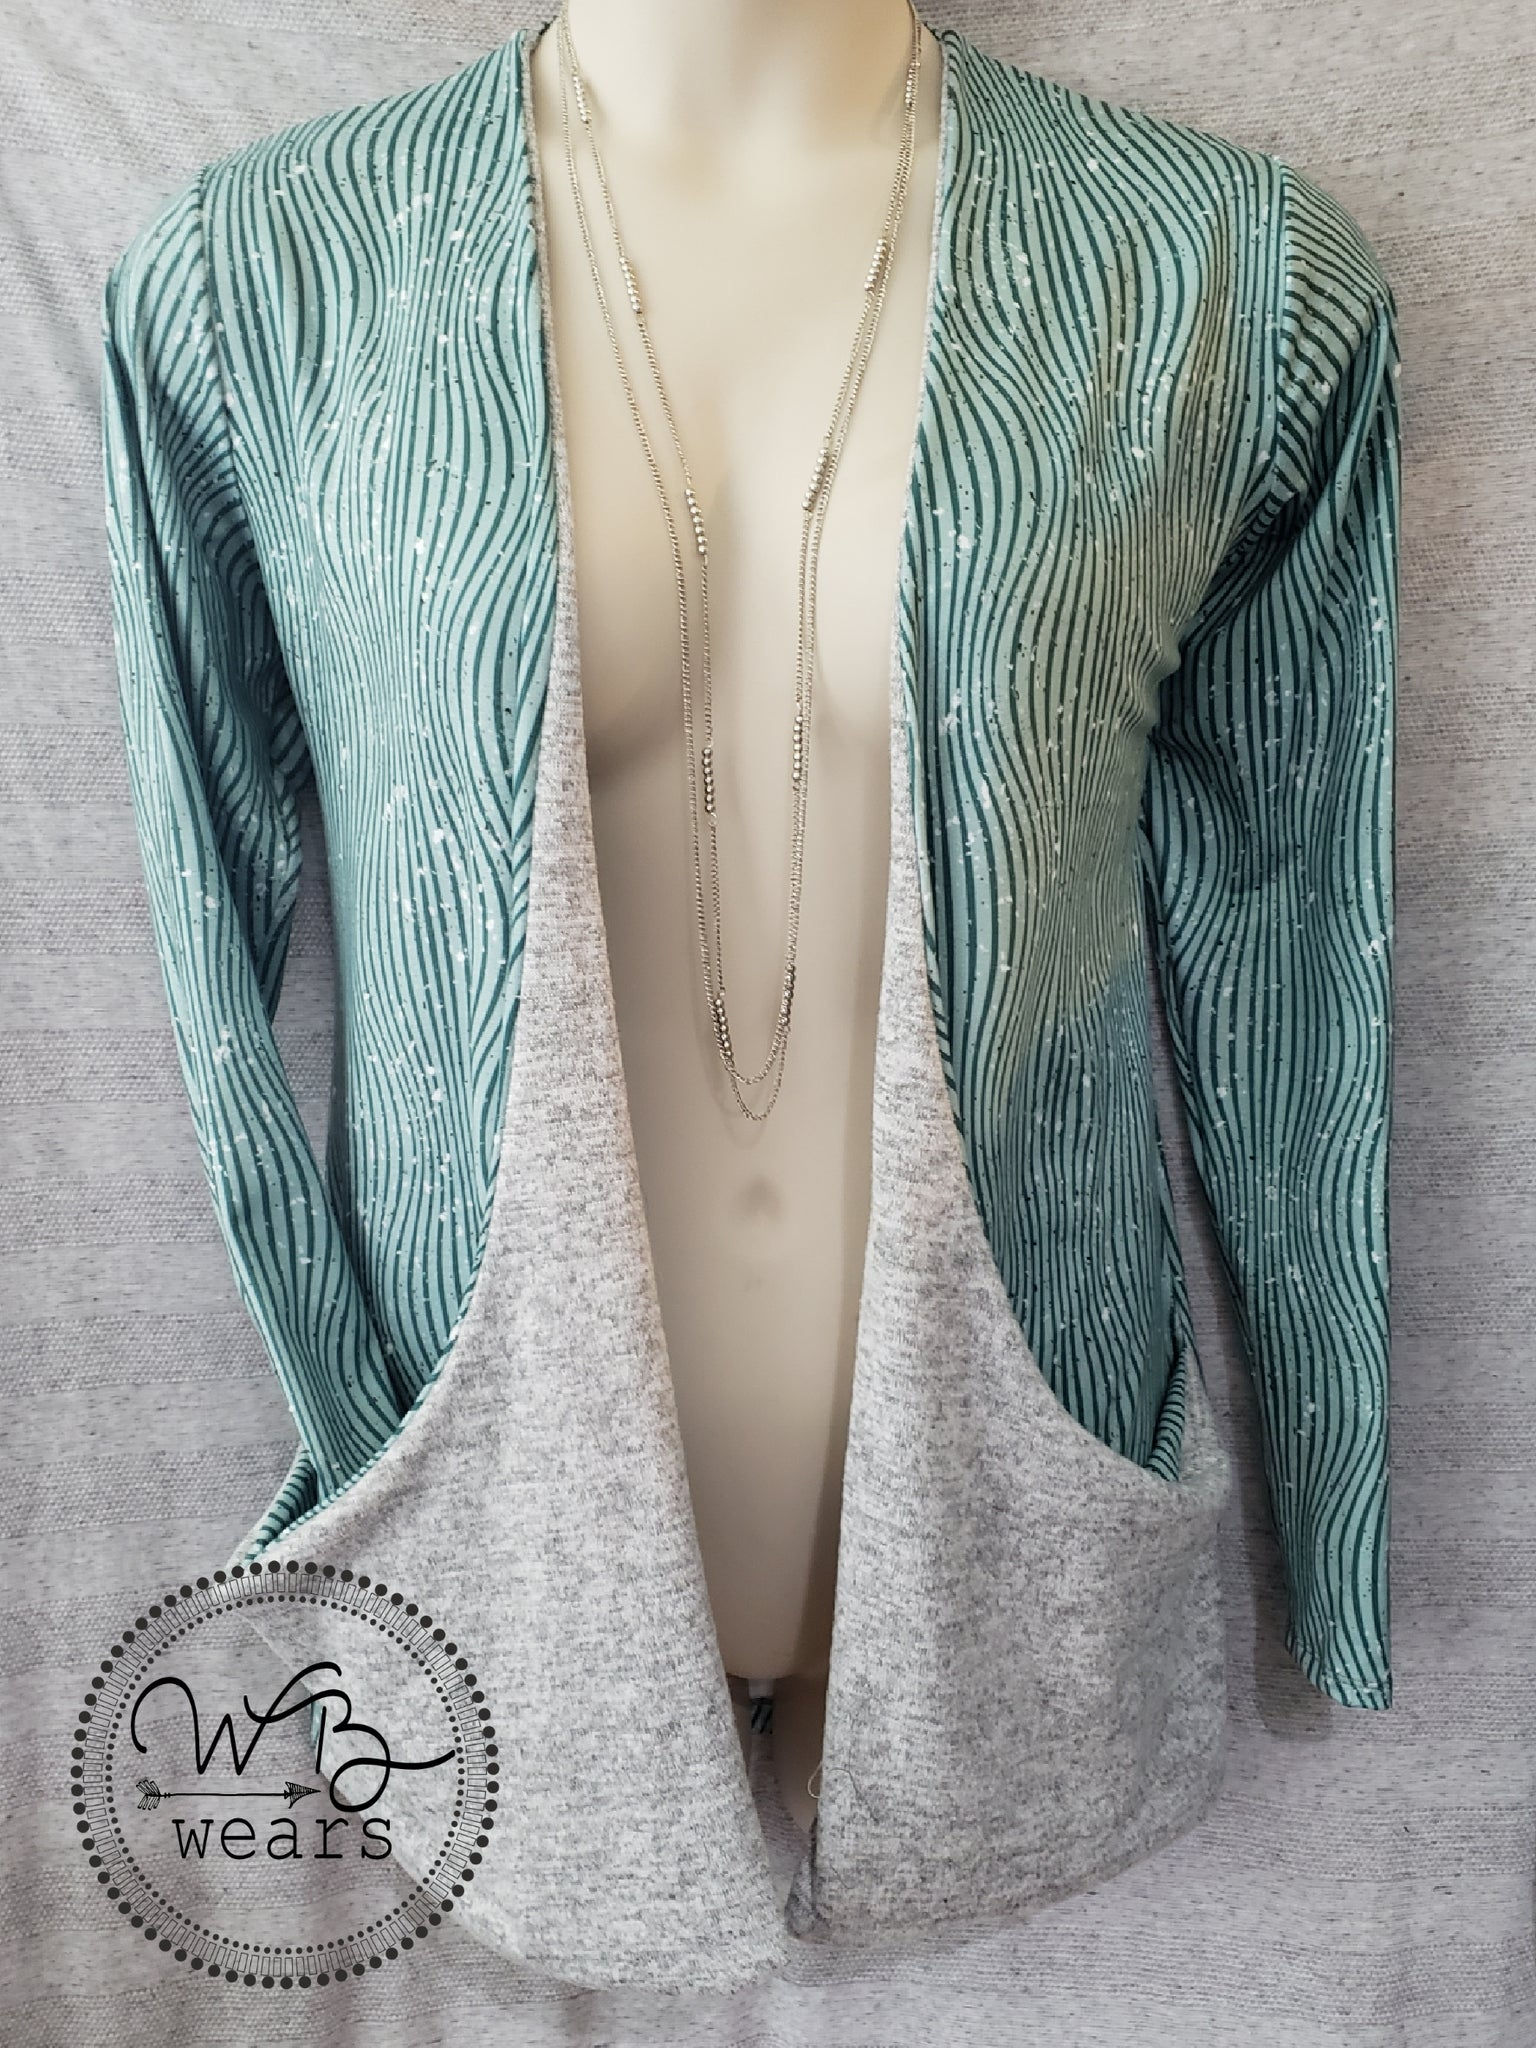 Drop Pocket Cardigan size XL - WB Wears